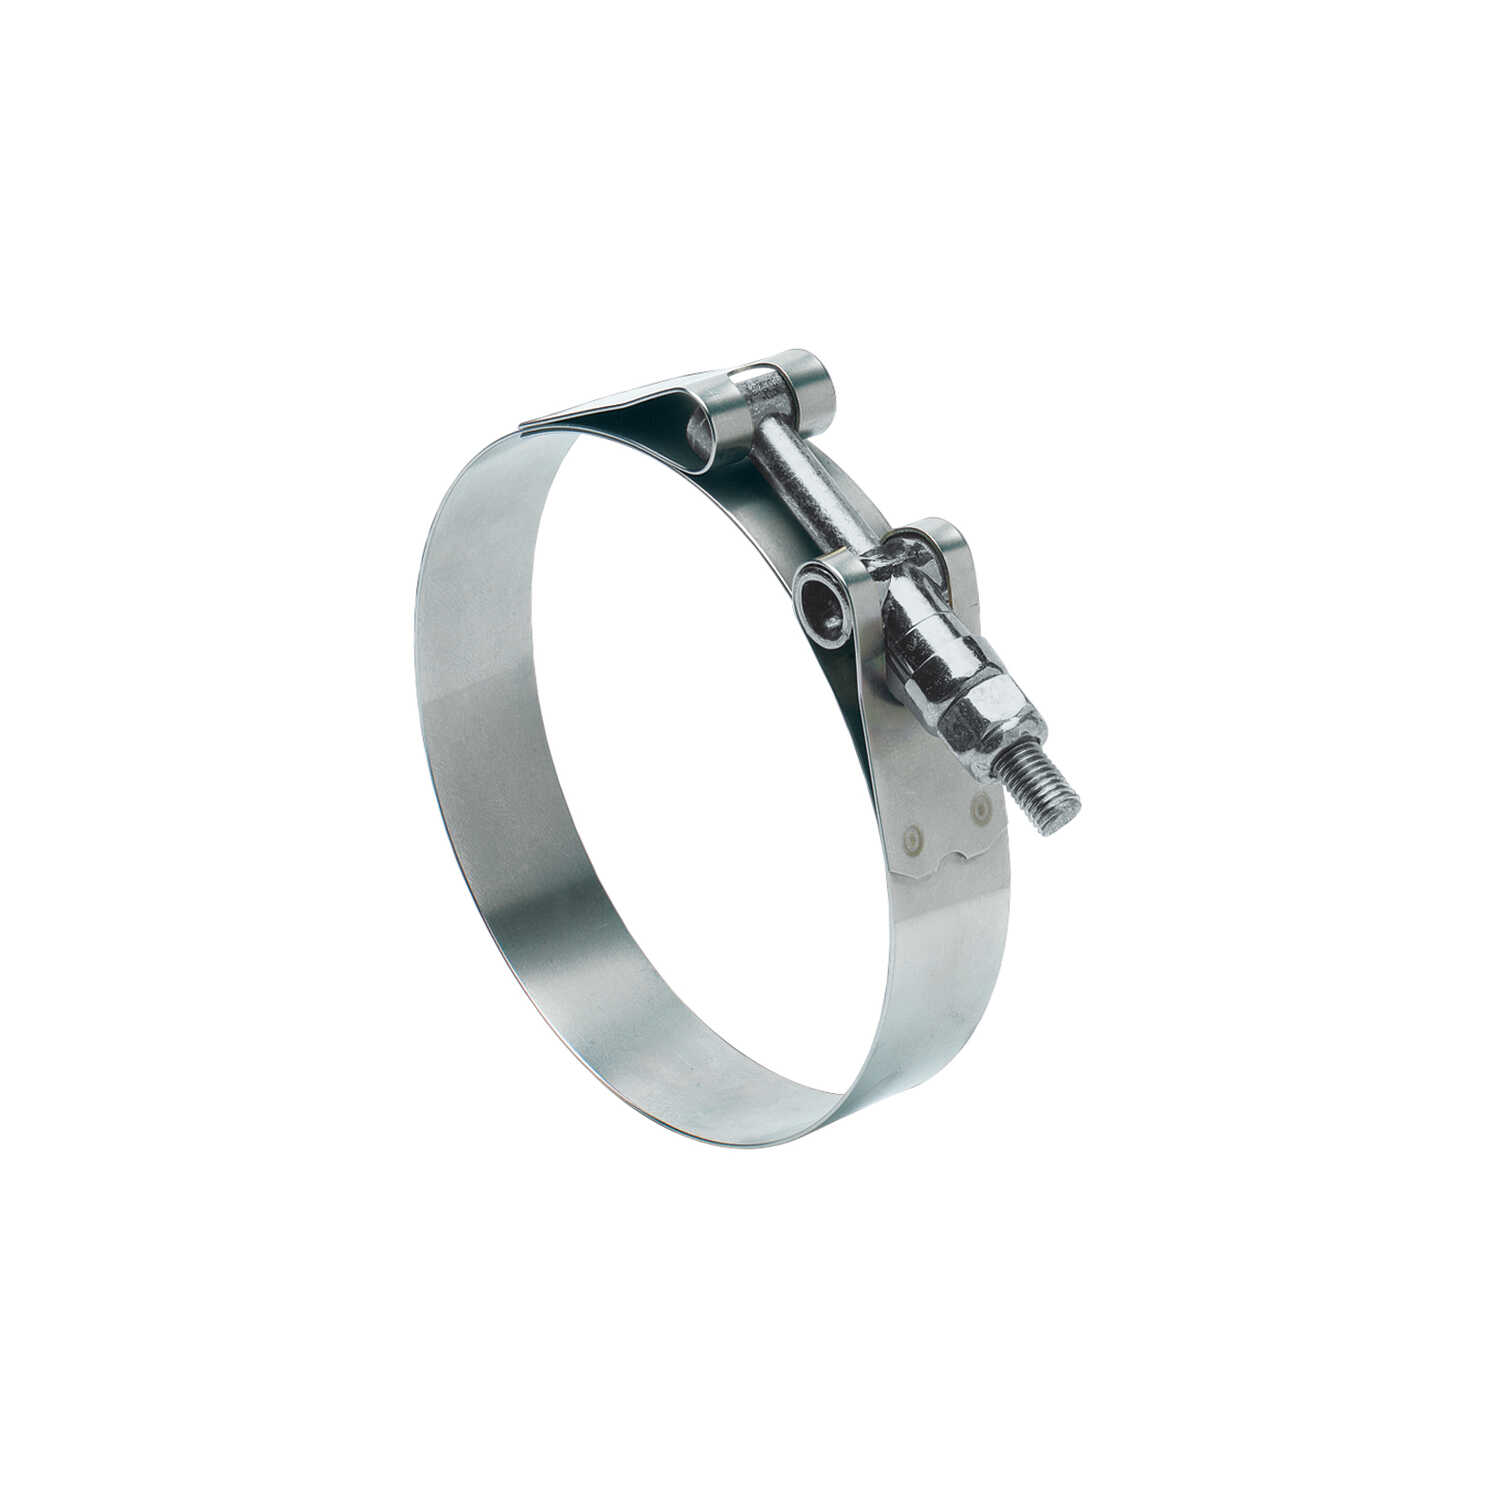 Ideal  Tridon  3 in. 3-5/16 in. 300  Silver  Hose Clamp  Stainless Steel Band  T-Bolt